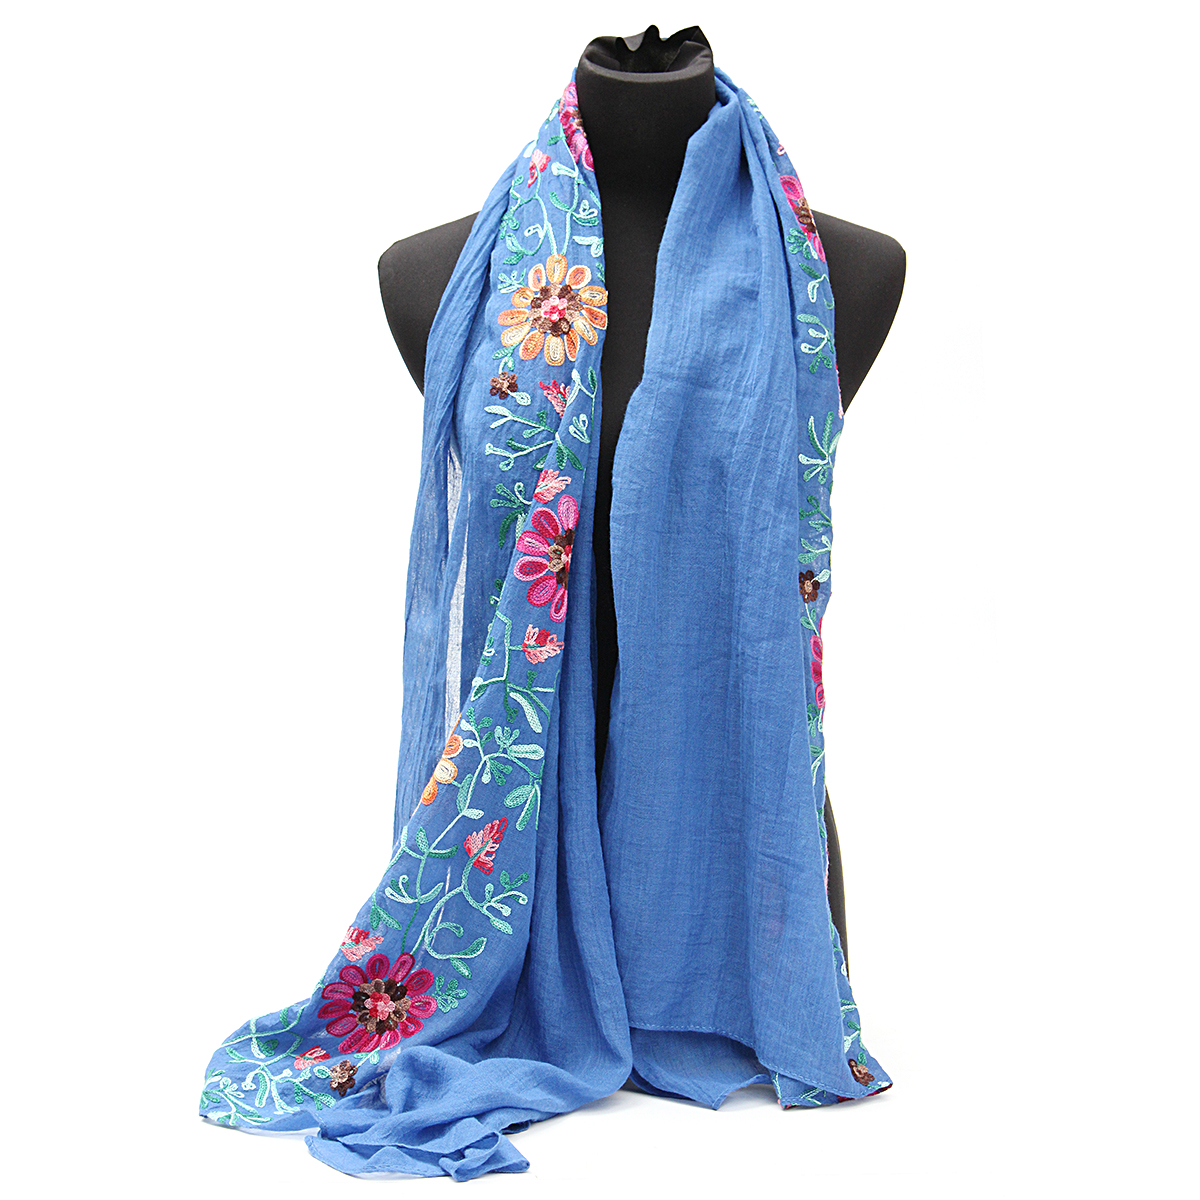 Cheap hijab wrap, Buy Quality silk scarf scarves directly from China printed hijab Suppliers: Fashion Big Scarf Luxury Women Brand Silk Scarf Scarves Women Shawl High Quality Solid Color Small Flower Print hijab Wrap Enjoy Free Shipping Worldwide! Limited Time Sale Easy Return.